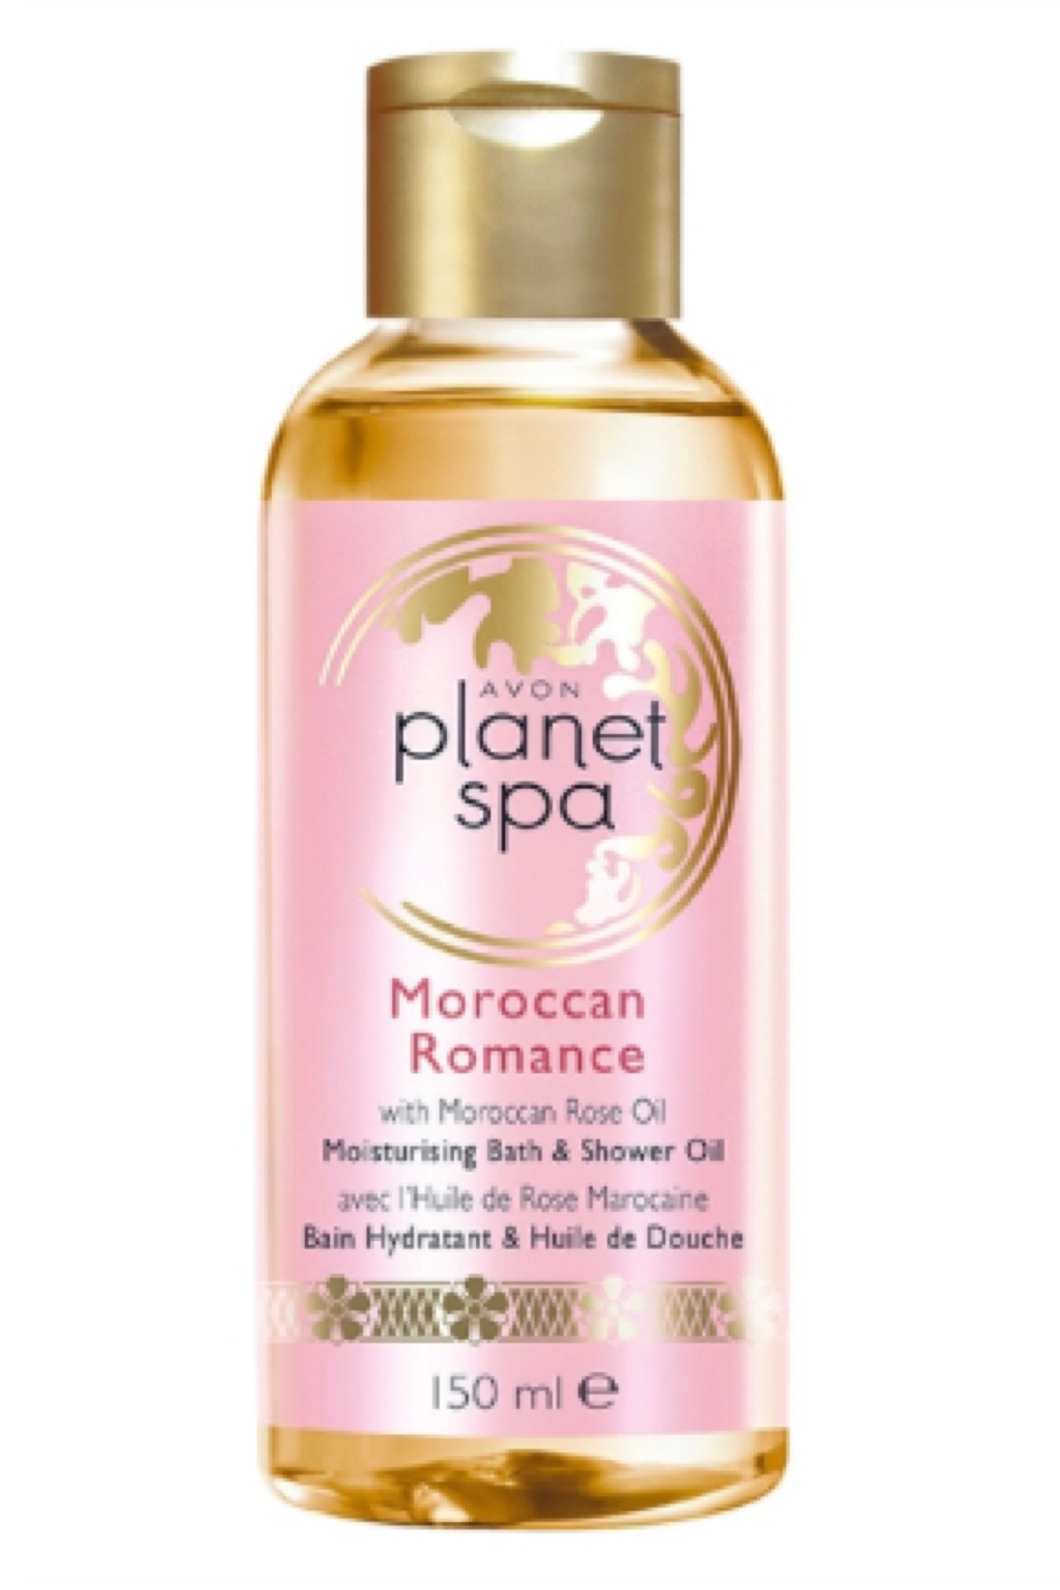 Planet Spa Moroccan Romance Bath & Shower Oil - 150ml